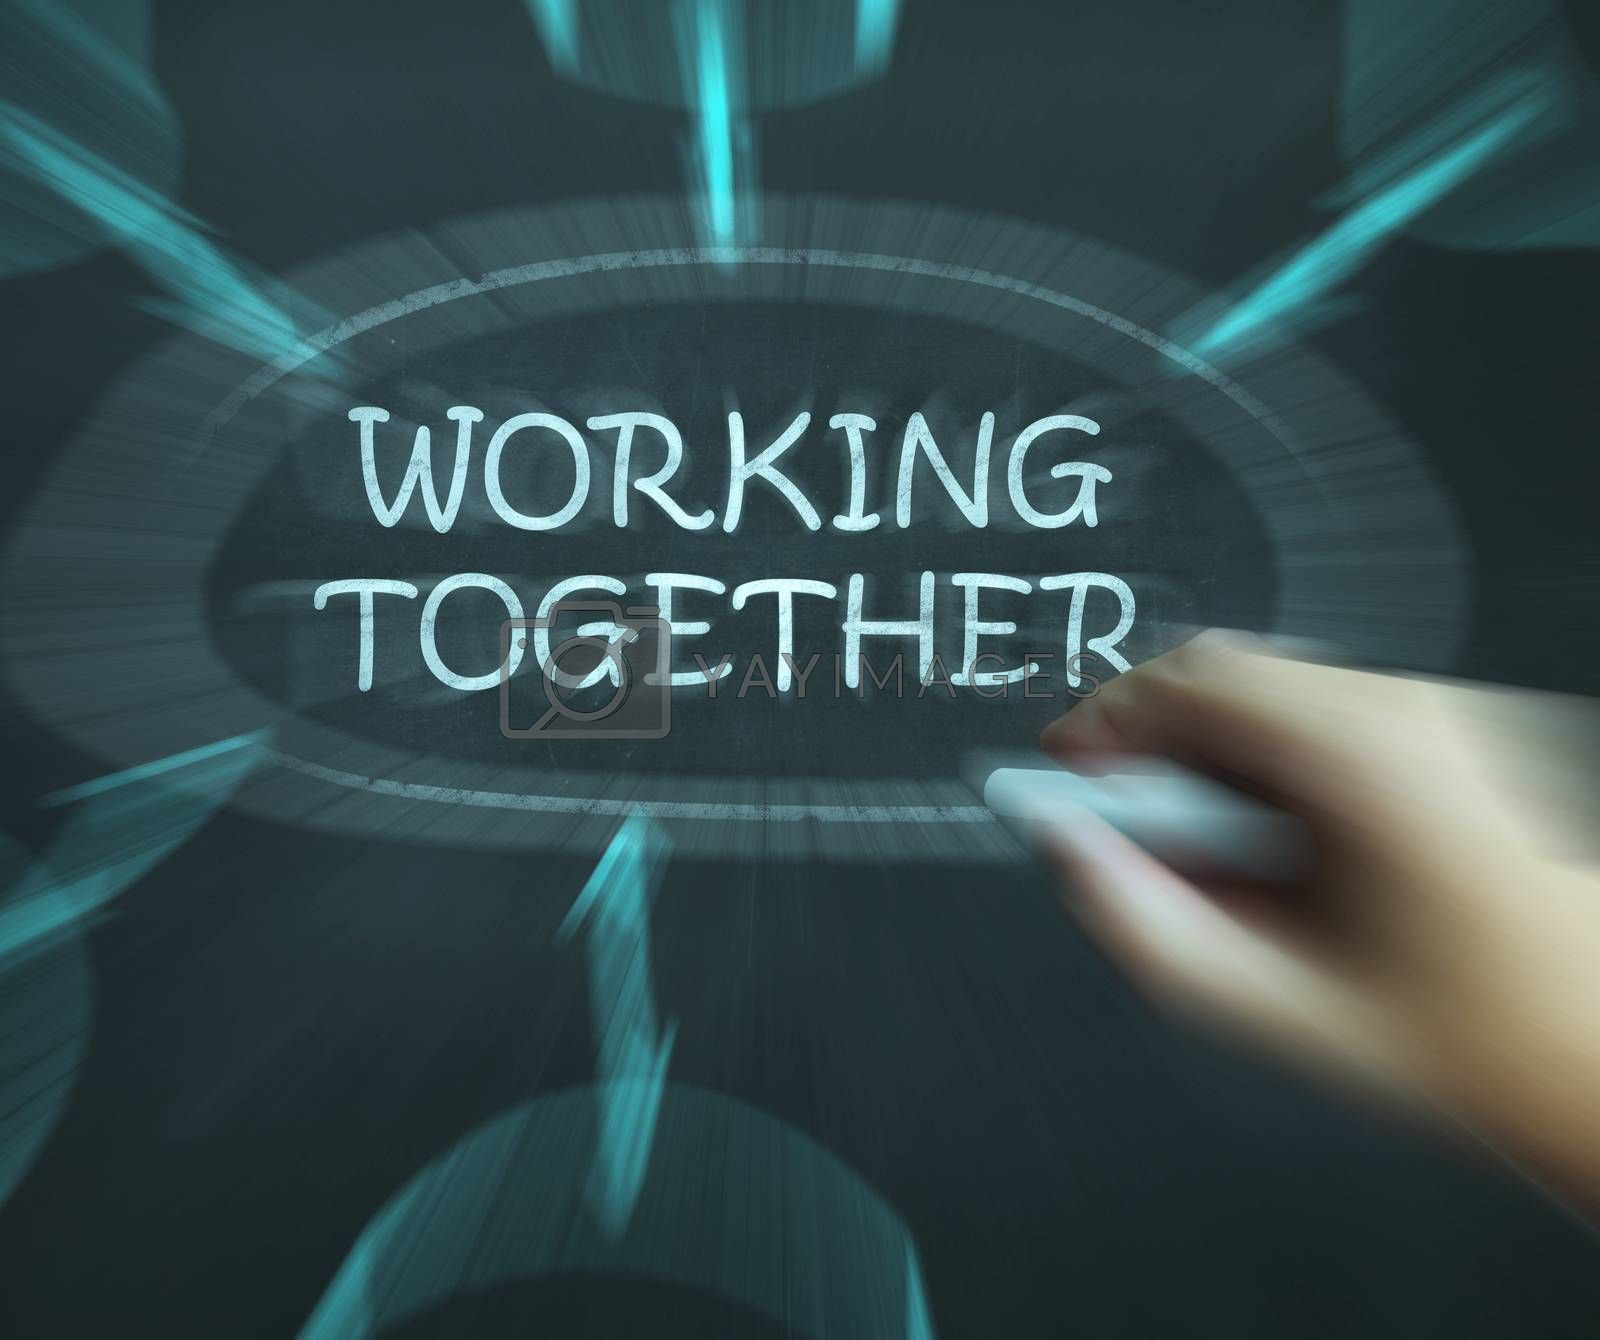 Working Together Diagram Means Teams And Cooperating by stuartmiles